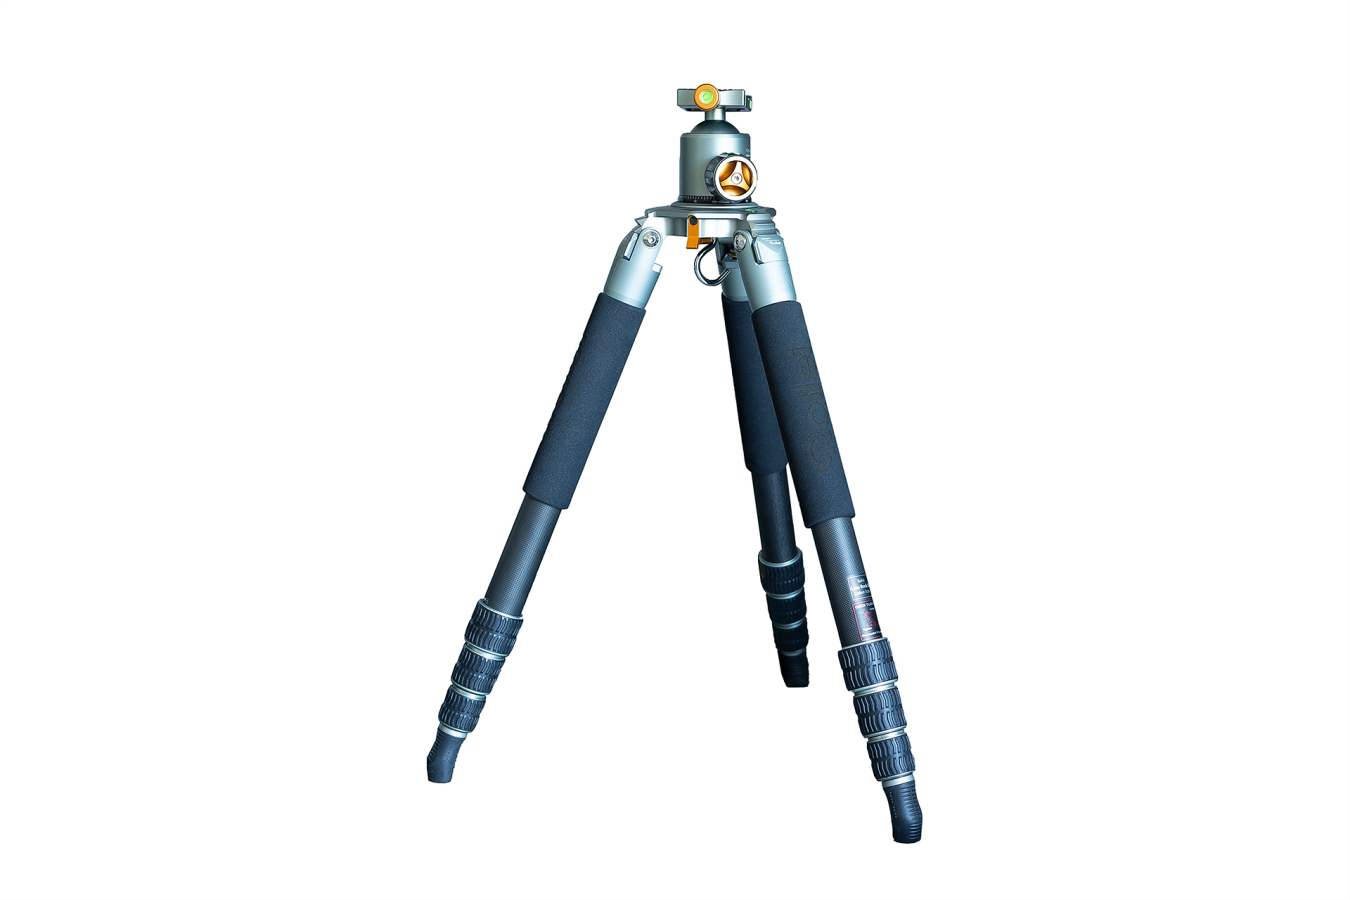 Choosing your photo tripod, an important tool for photography